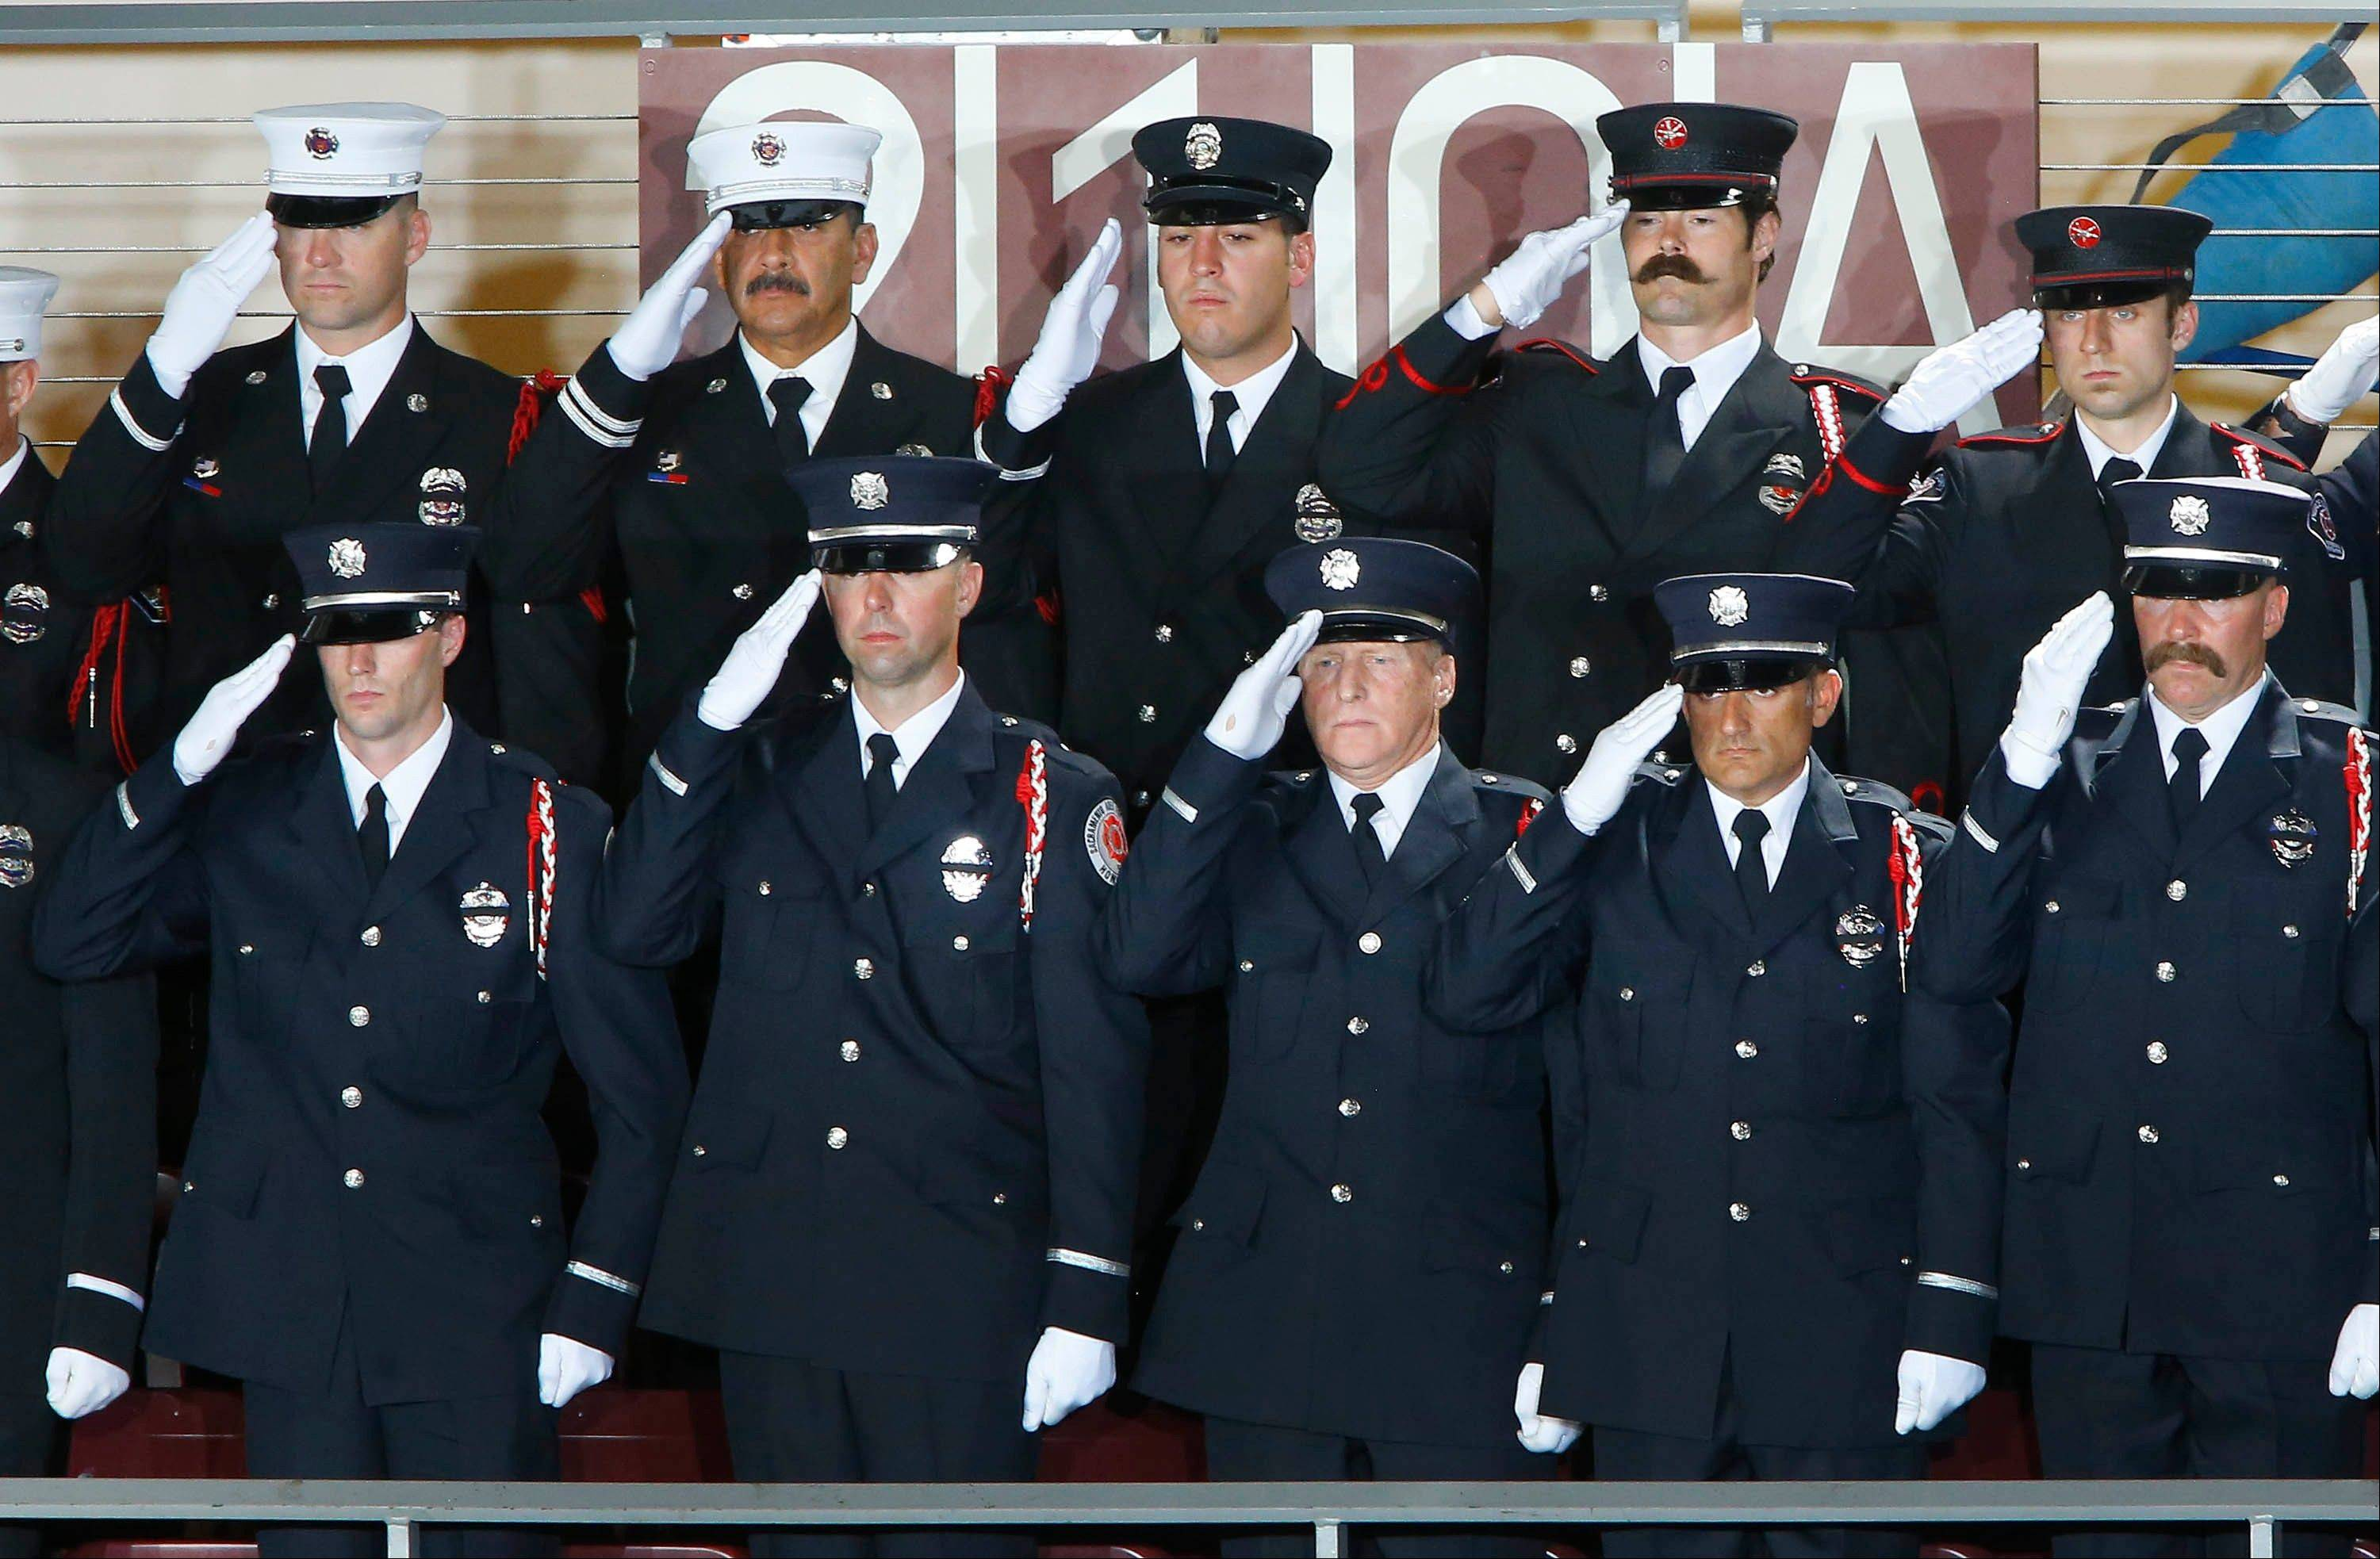 Firefighters from Sacramento, Calif., stand during the National Anthem during a memorial service for the 19 fallen firefighters at Tim's Toyota Center in Prescott Valley, Ariz. on Tuesday, July 9, 2013.